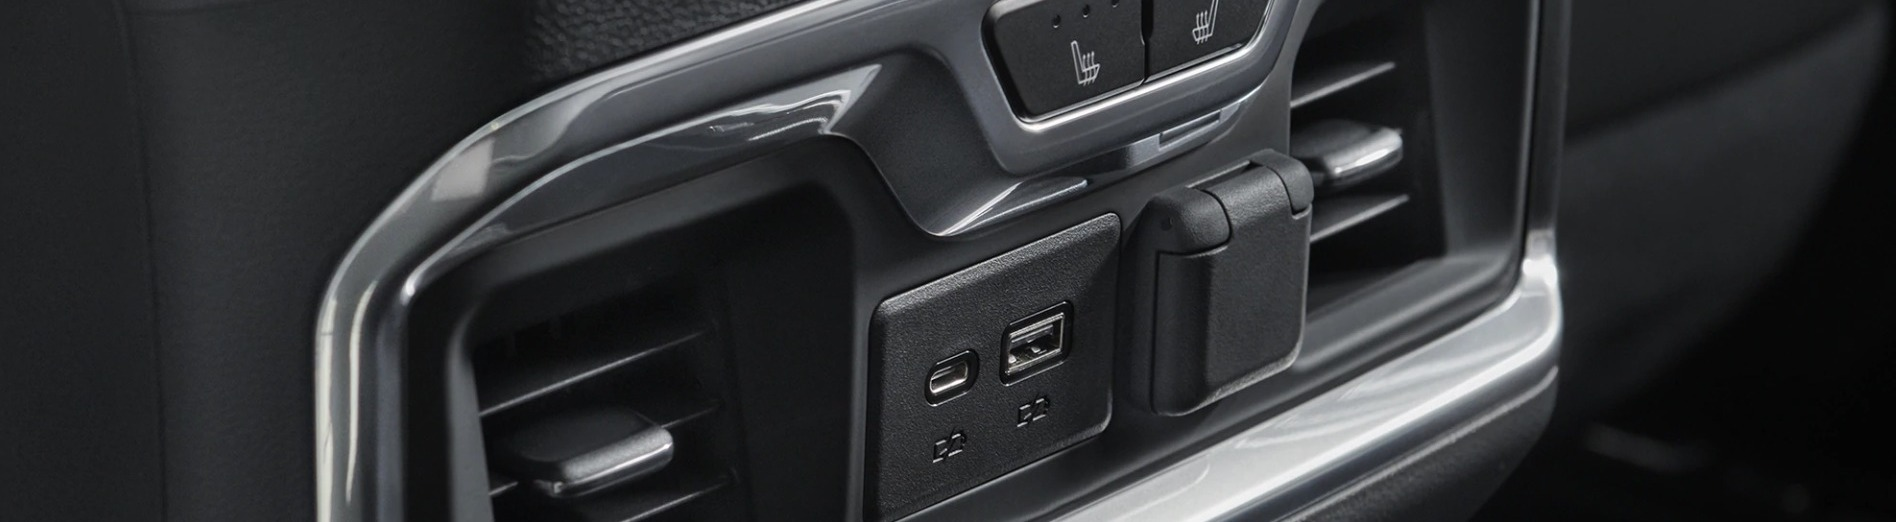 2nd-Row Amenities in the 2020 Silverado 1500